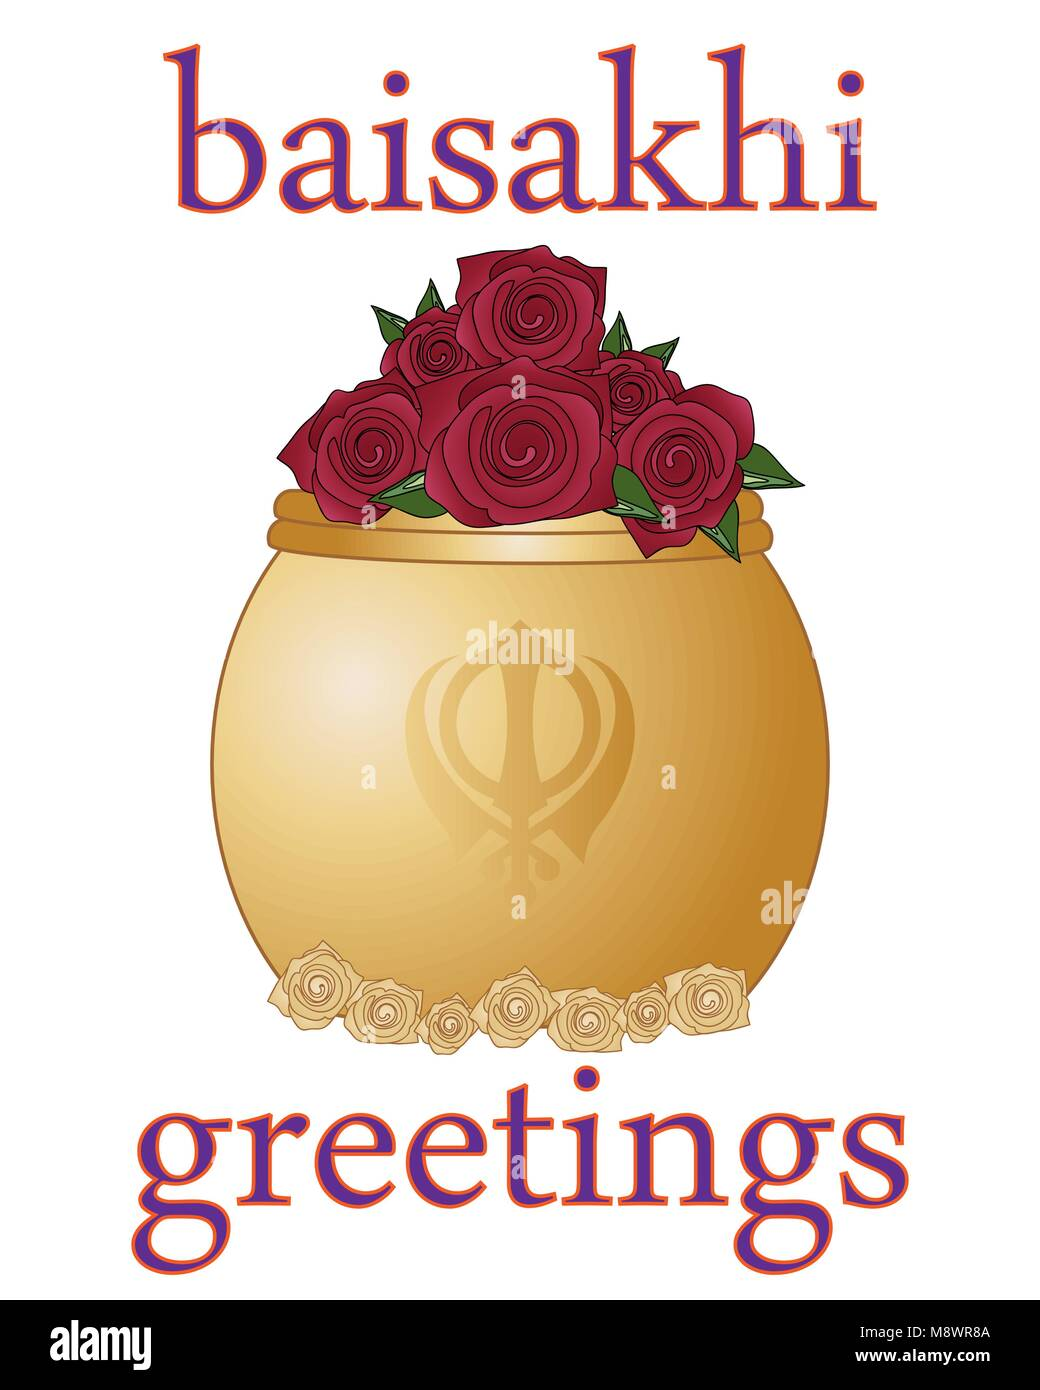 a vector illustration in eps 10 format of a Baisakhi greeting card for the Sikh religious festival with golden rose - Stock Vector